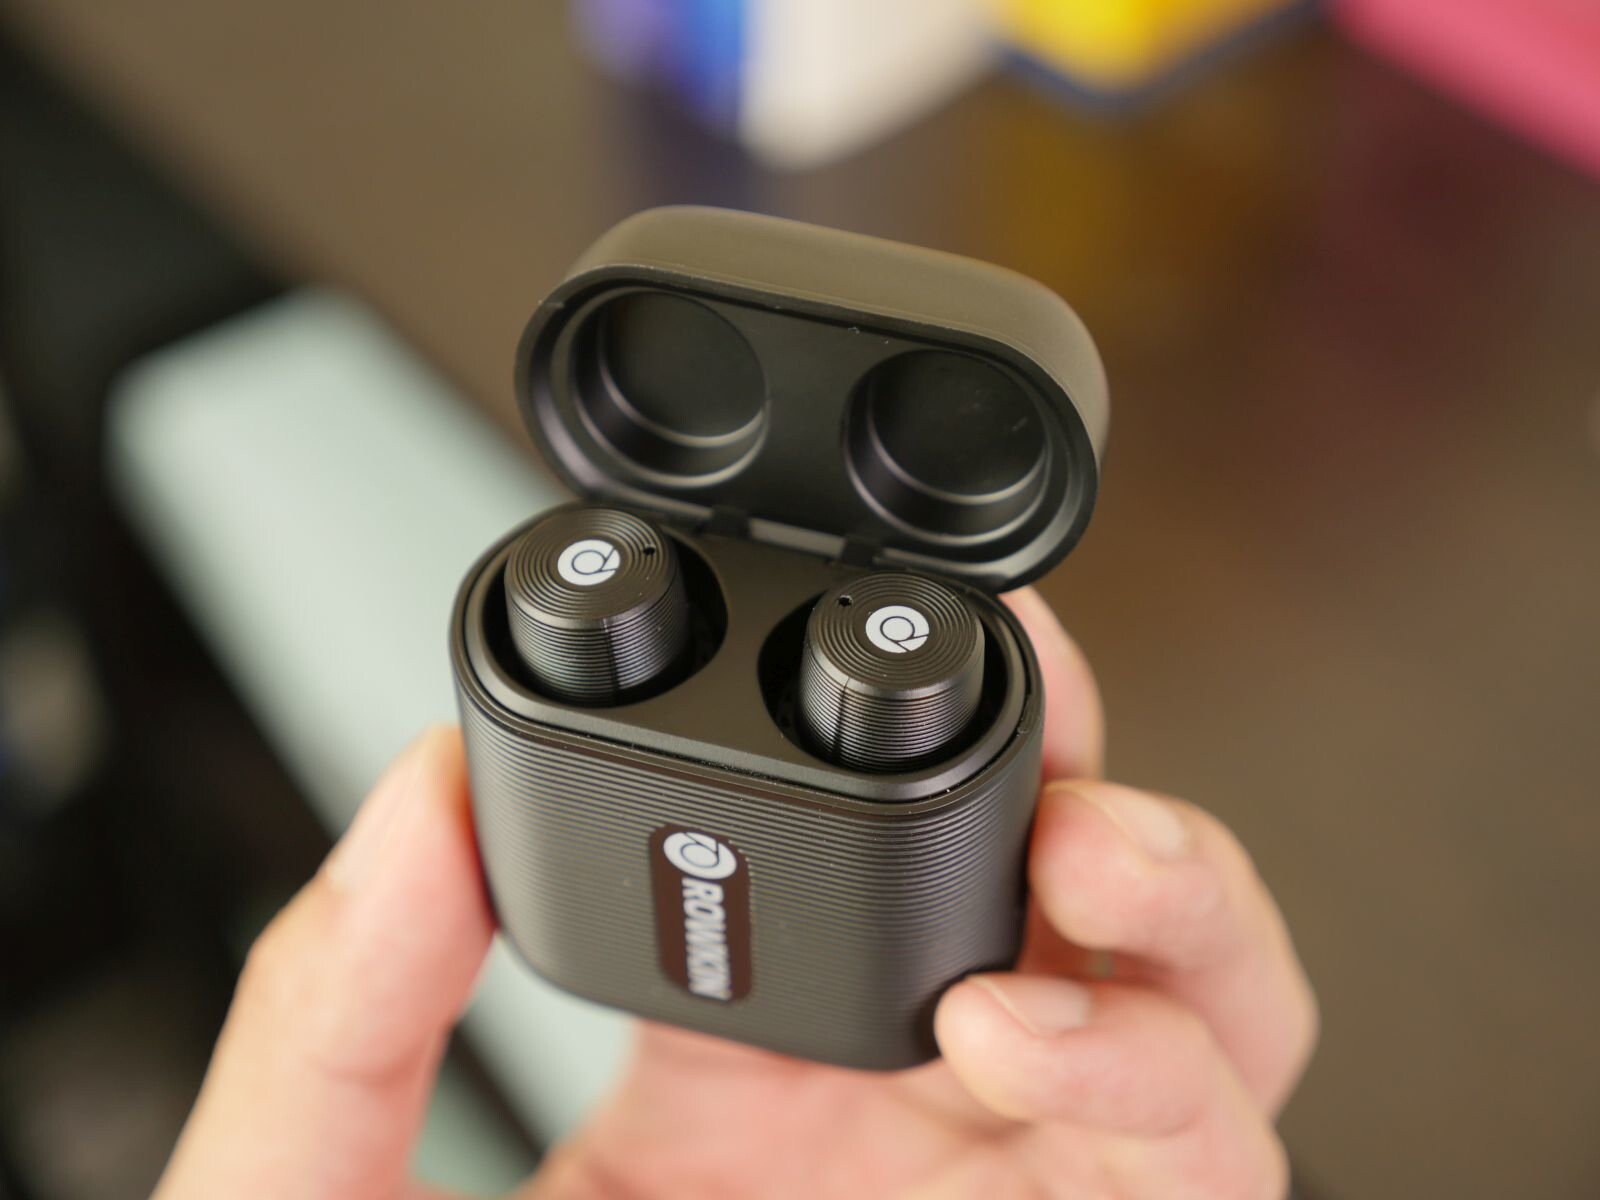 d8114d5b0ed Best affordable true wireless earbuds of 2018 - PhoneArena